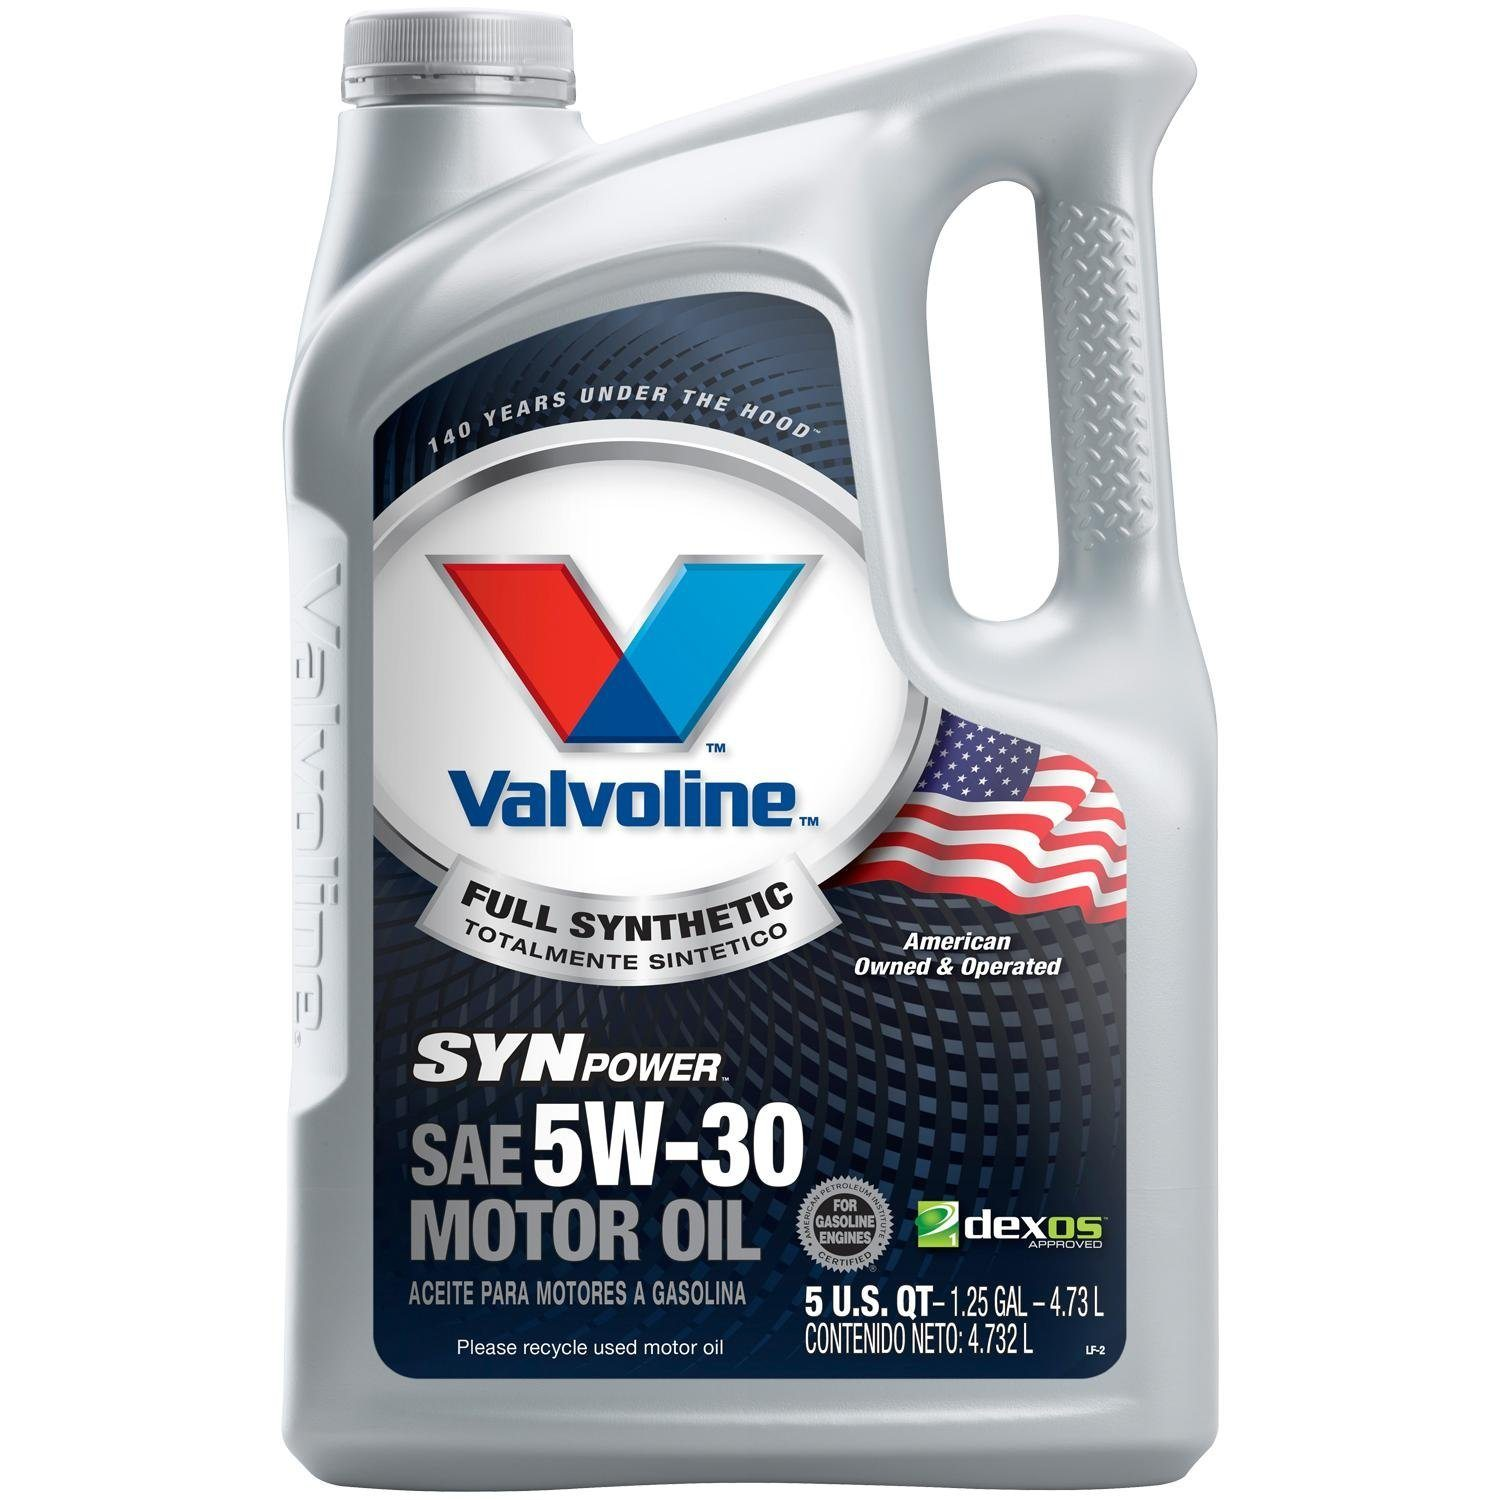 Shop for Valvoline Motor Oil in All Motor Oil. Buy products such as Valvoline™ High Mileage with MaxLife™ Technology SAE 5W Synthetic Blend Motor Oil - Easy Pour 5 Quart at Walmart and save.